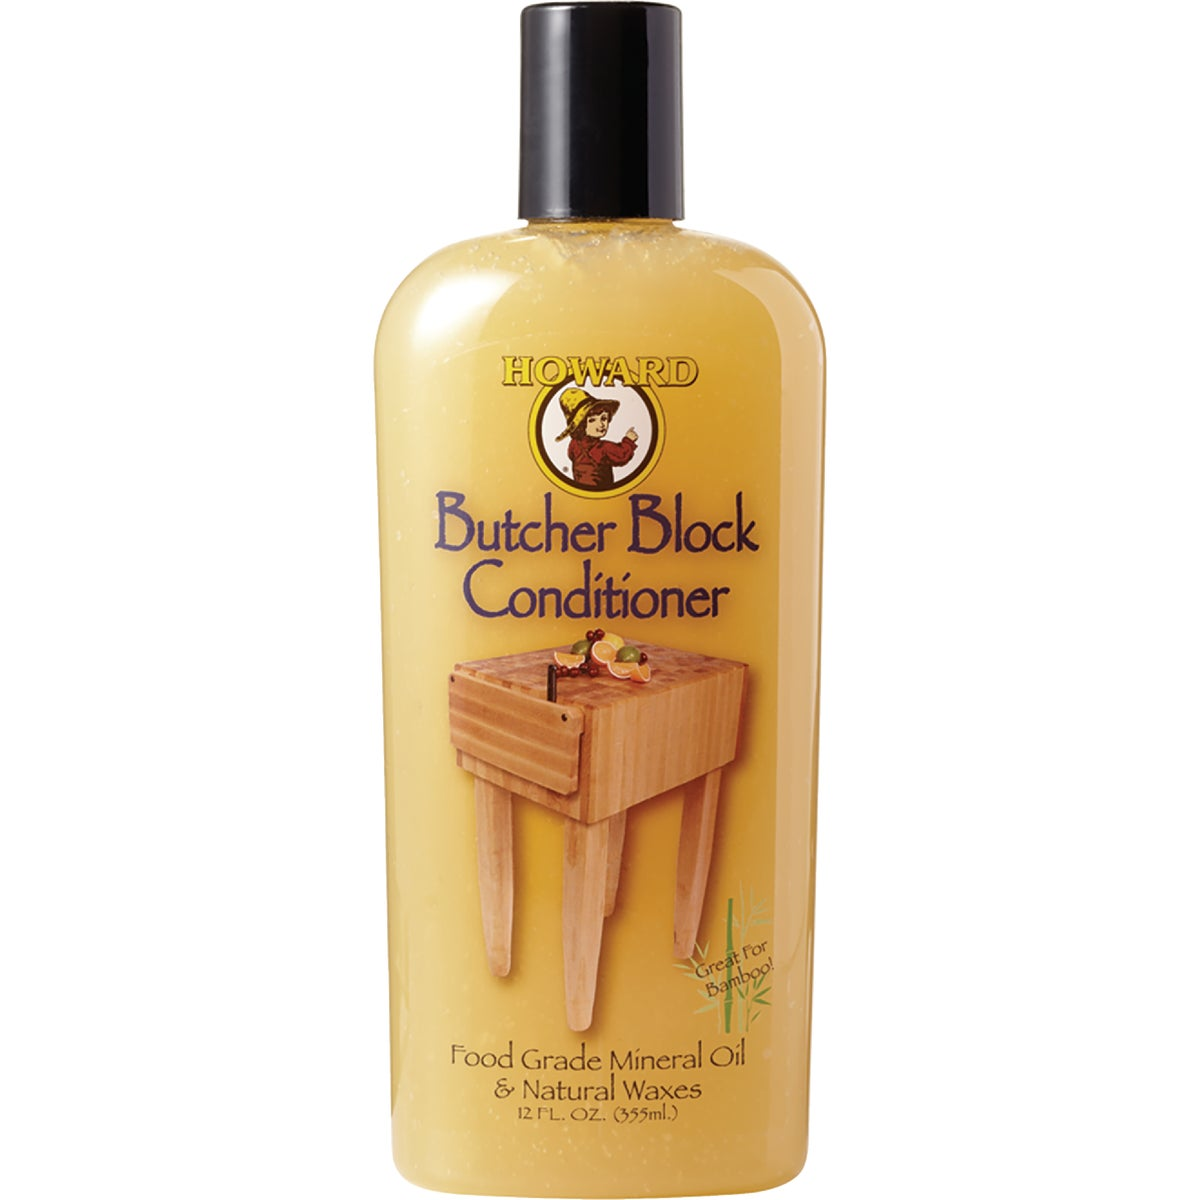 BUTCHR BLOCK CONDITIONER